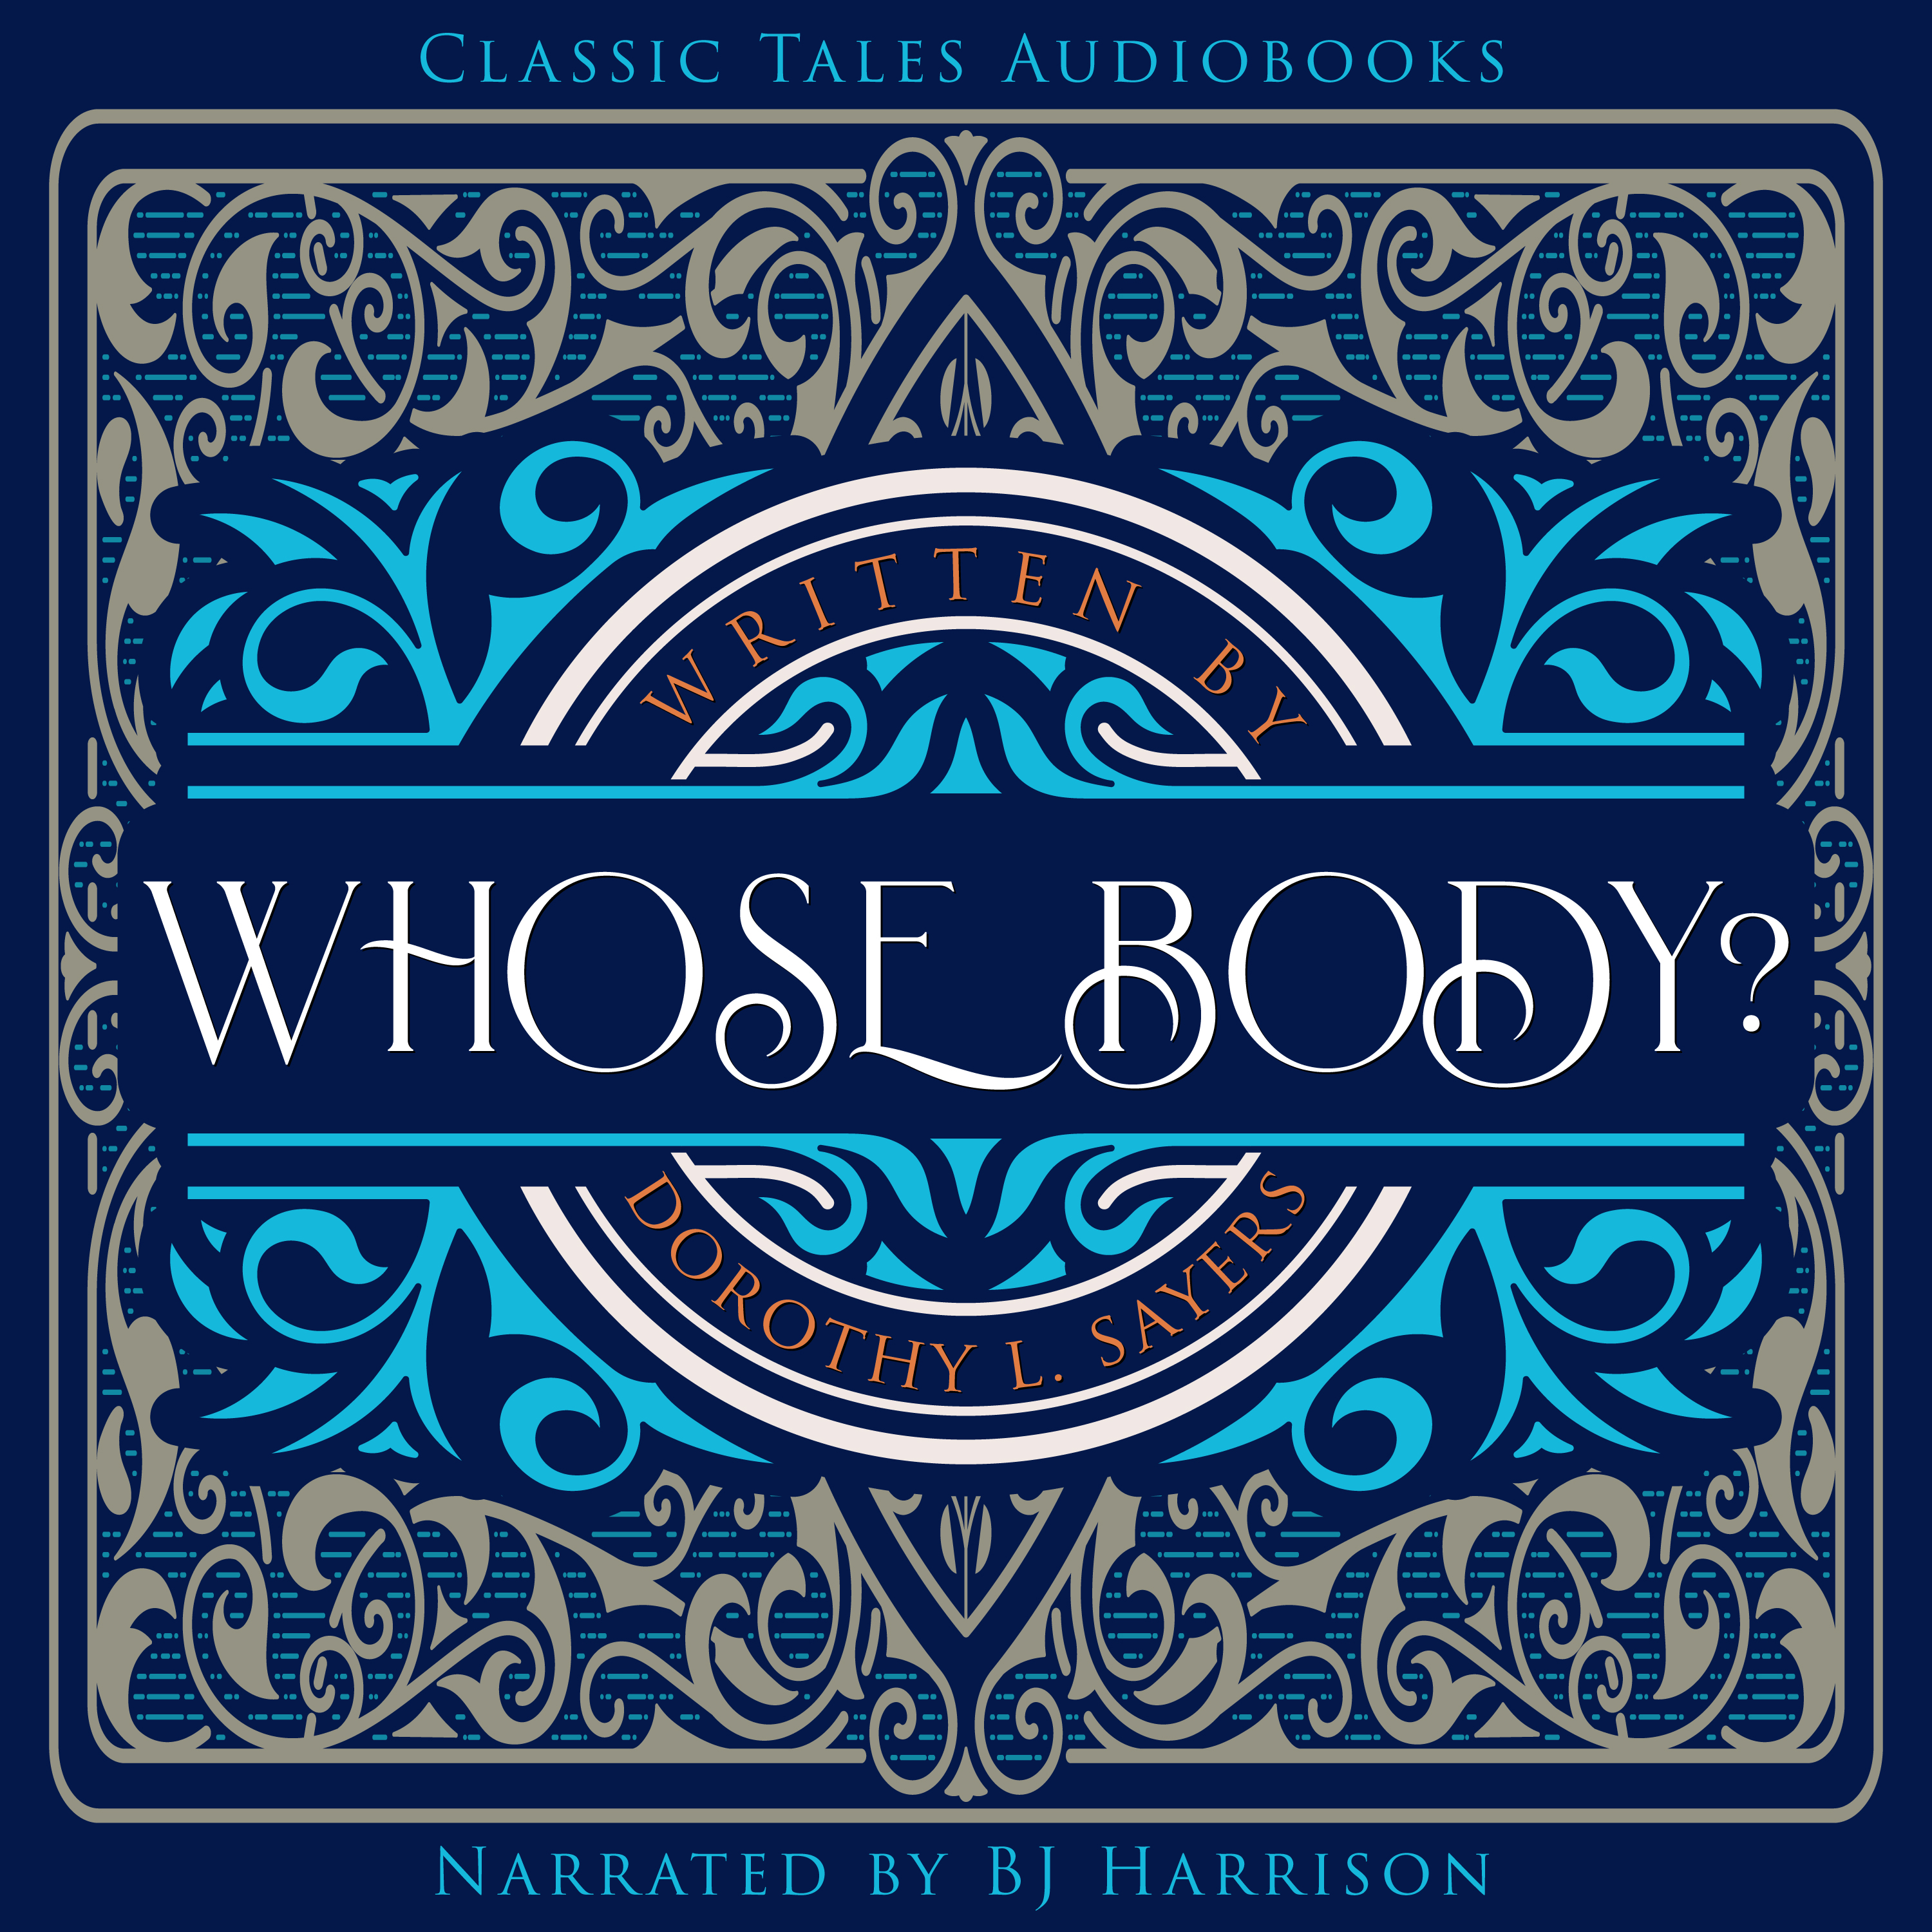 Ep. 707, Whose Body, Part 3 of 7, by Dorothy Sayers